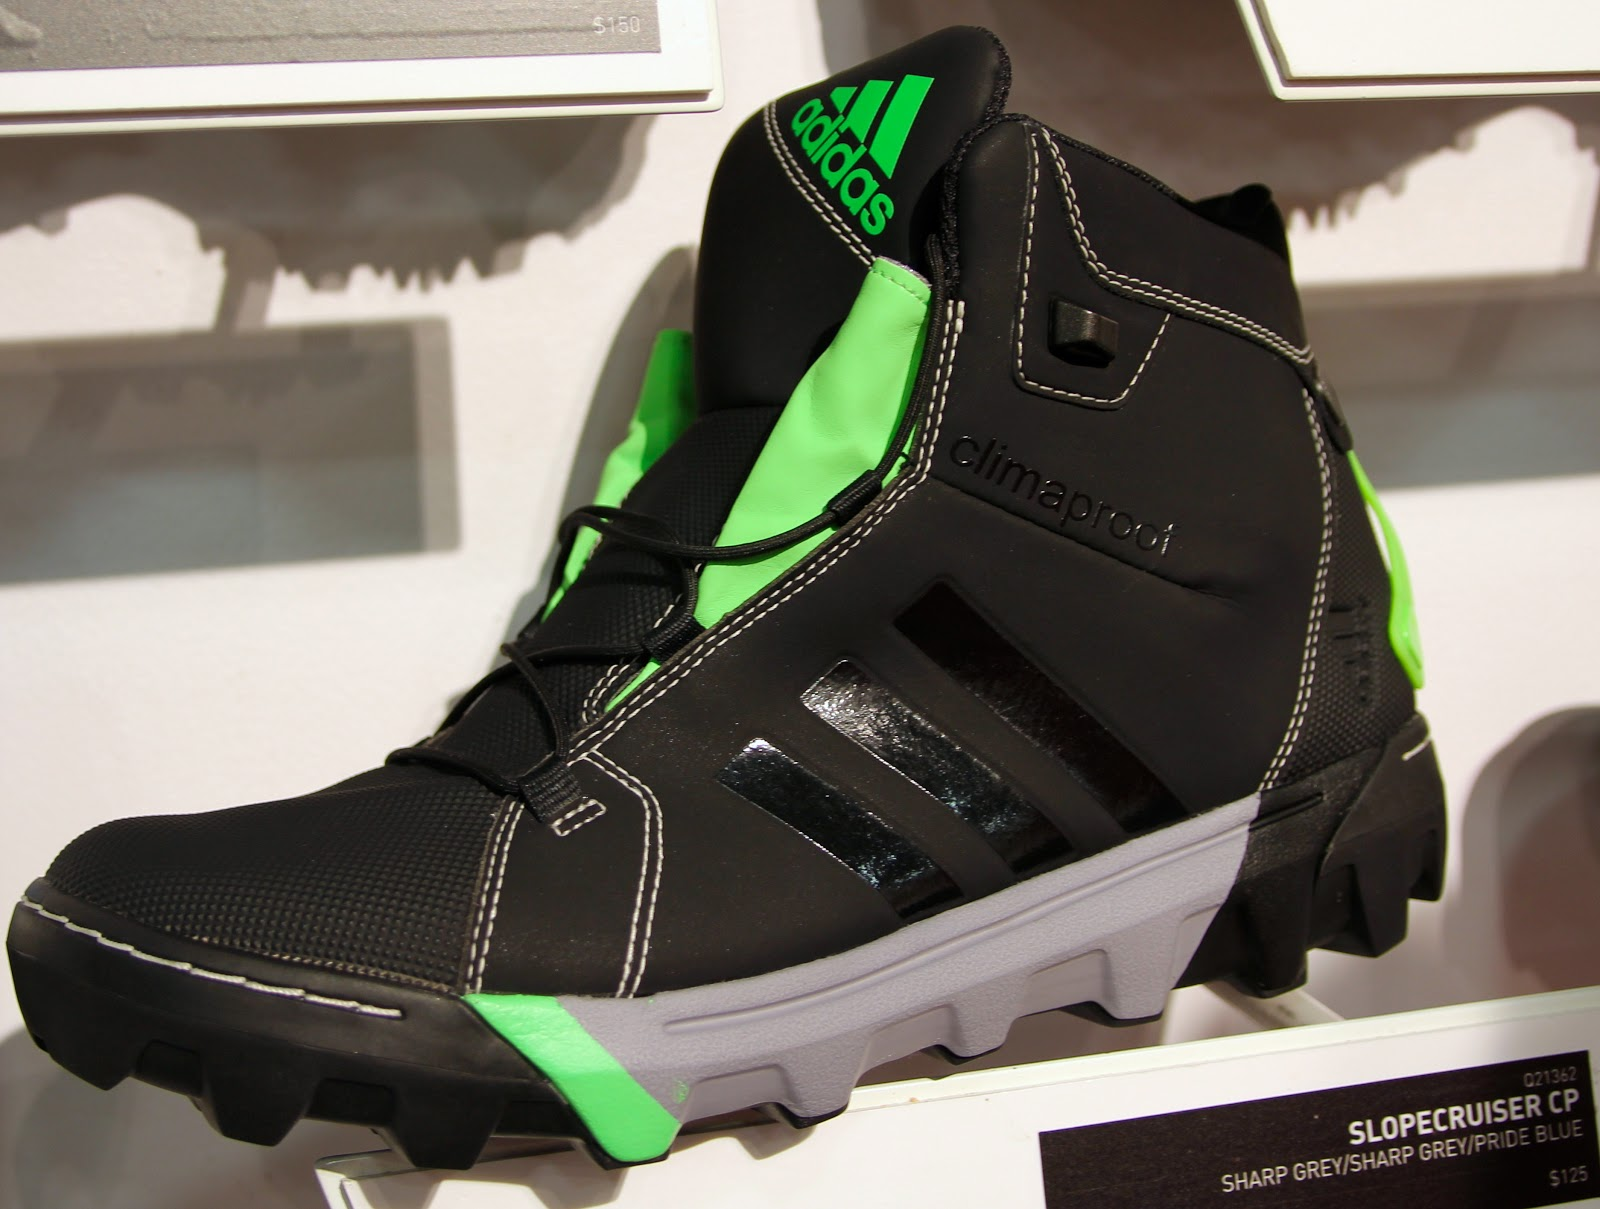 Slopecruiser CP- 125-same features as above in Black Ray Green b815891be